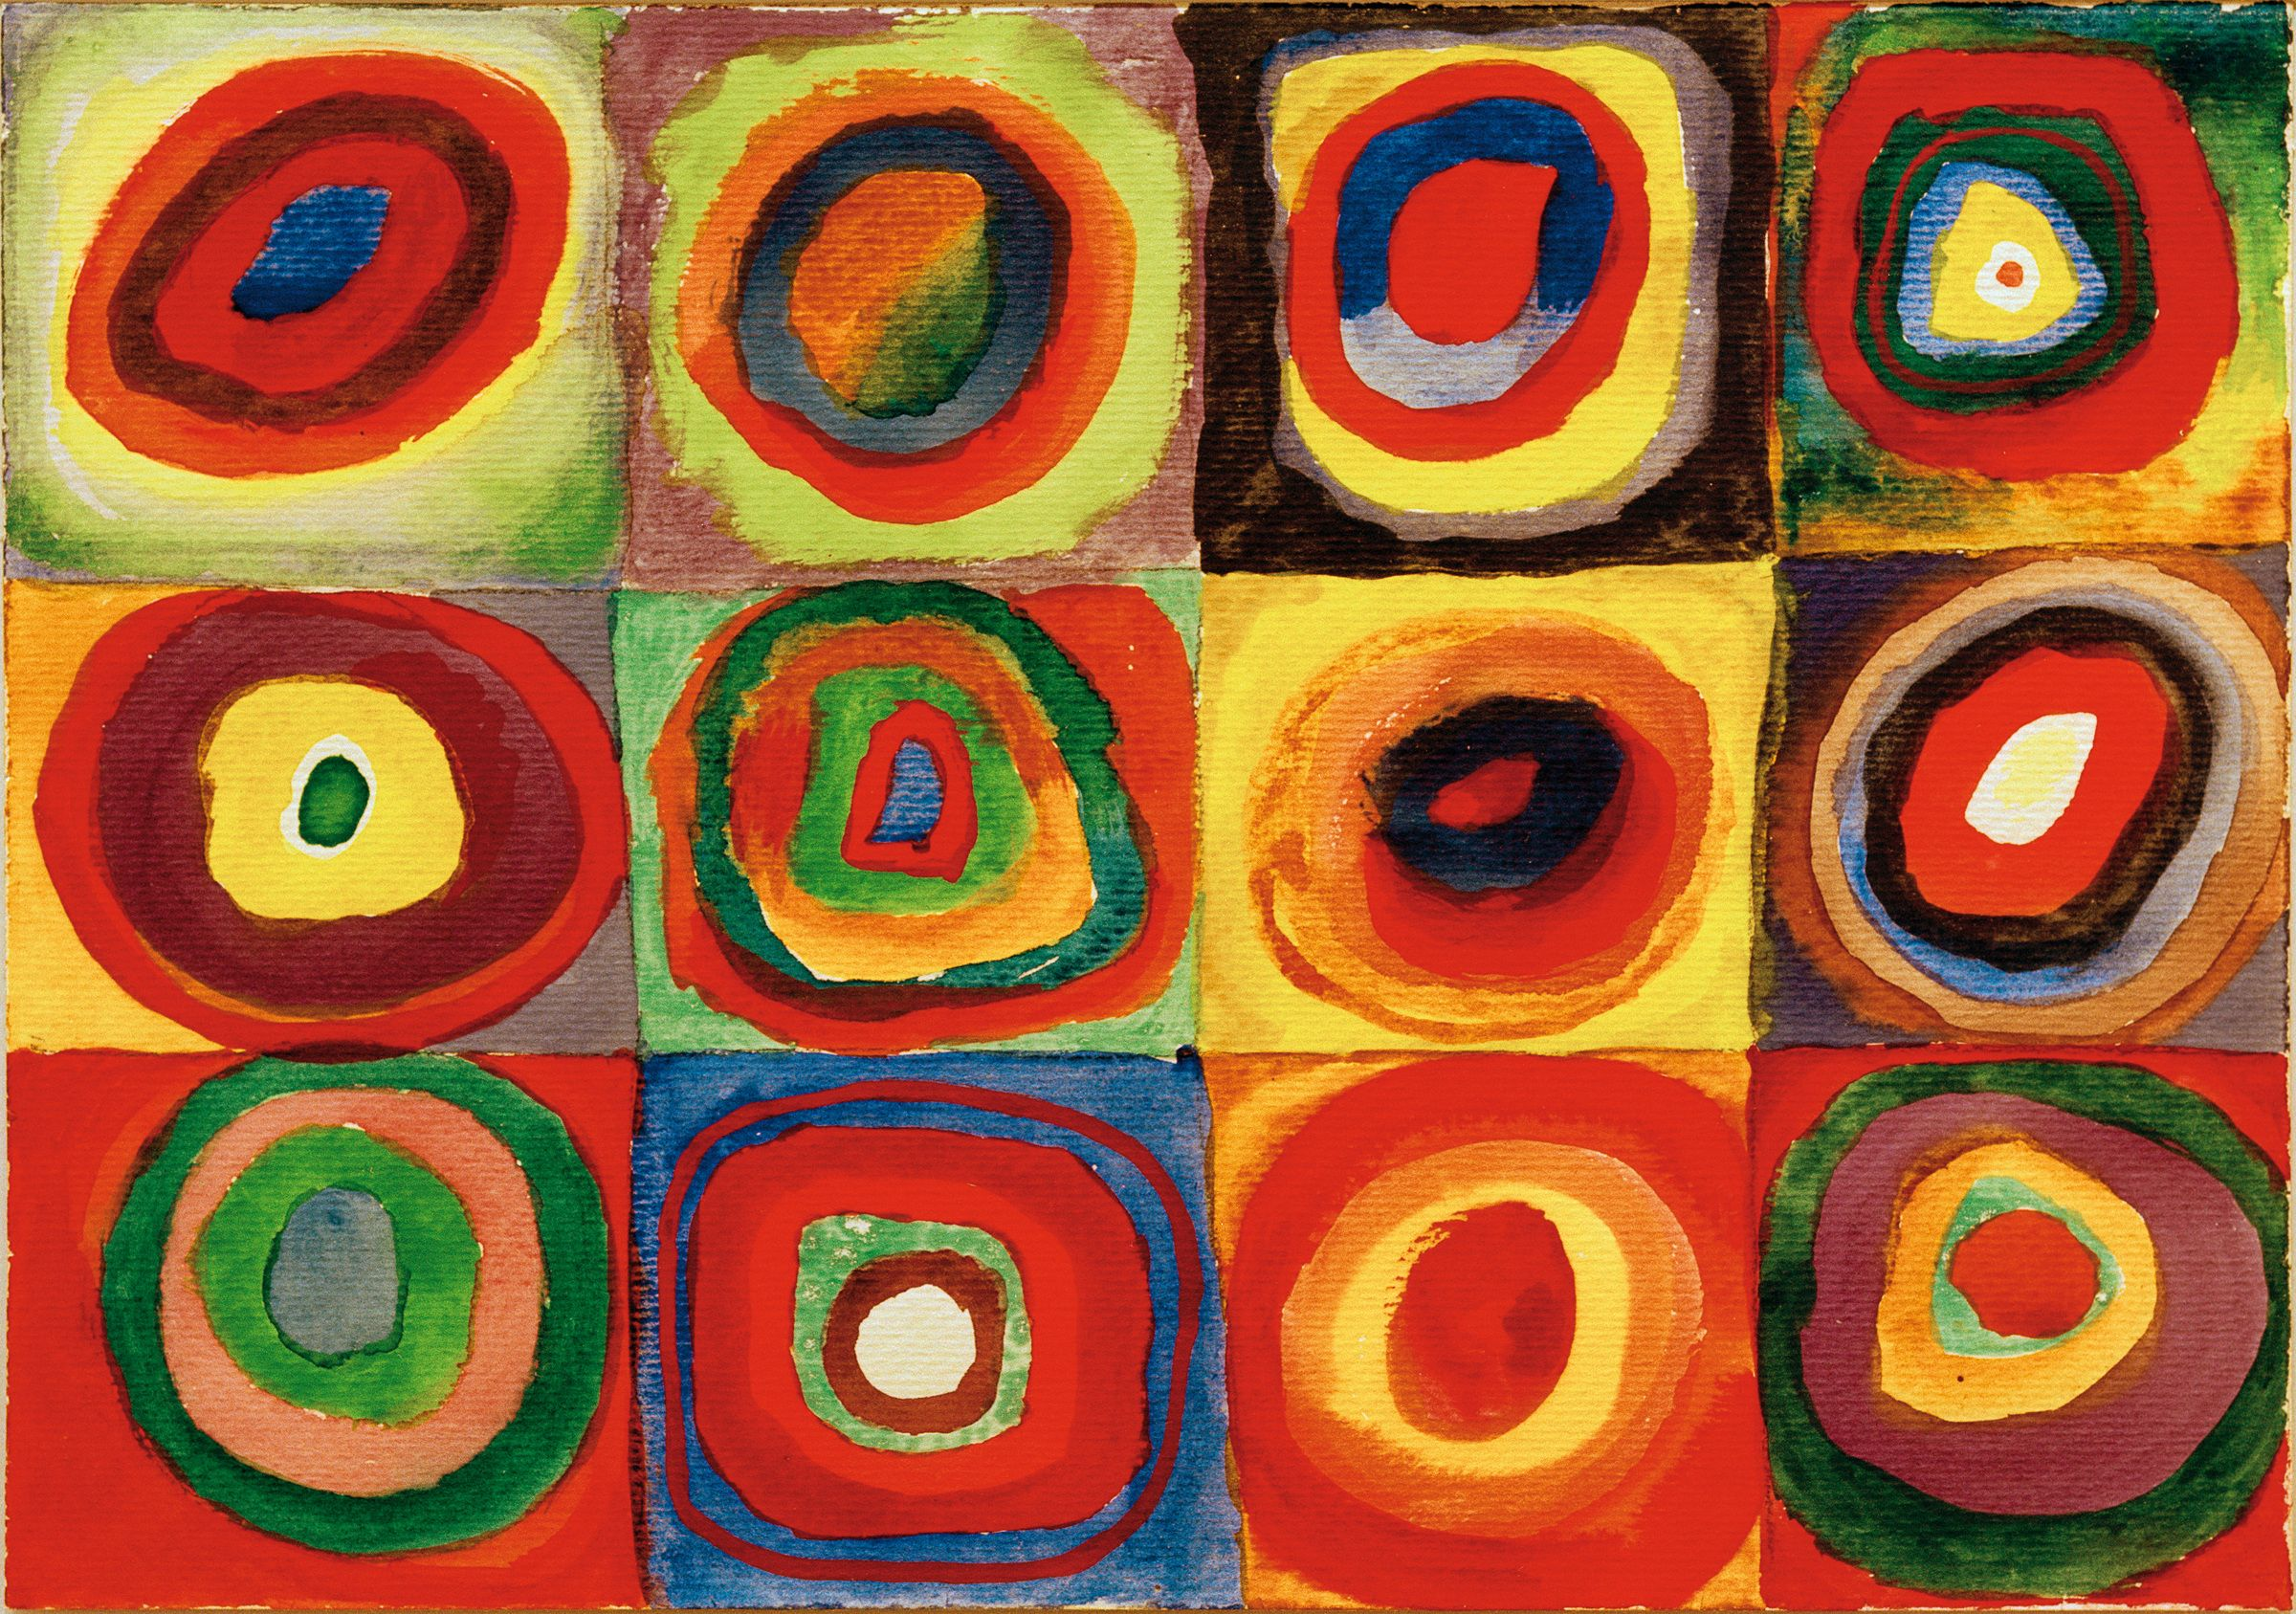 Wassily kandinsky was a russian painter and art theorist and is well known for his work in the abstract art and expressionism movements